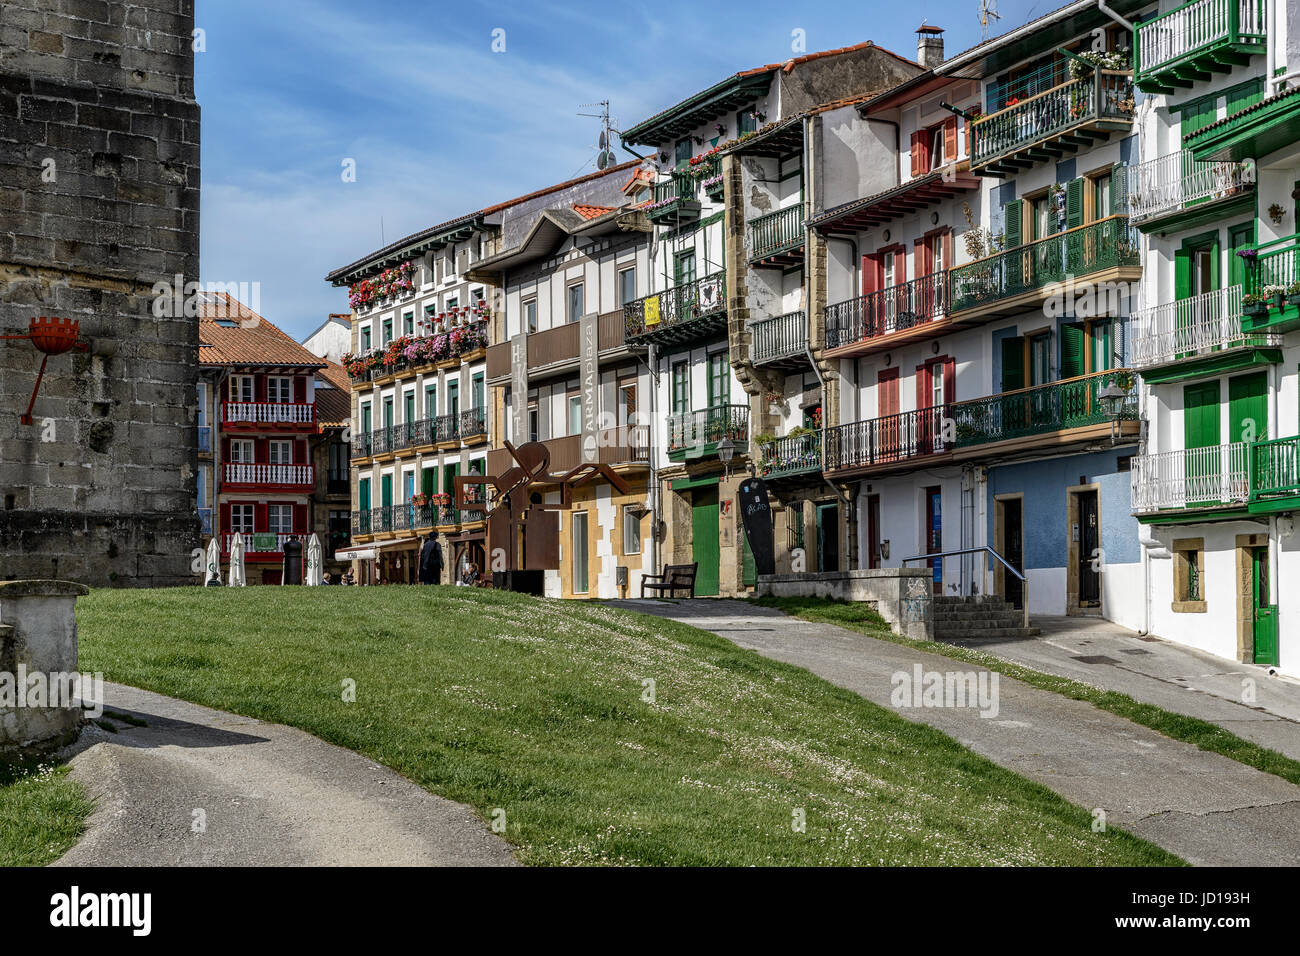 Arma plaza and Hotel Carlos V in the center of the town of Hondarribia (Fuenterrabia) Guipuzkoa, Basque Country, - Stock Image